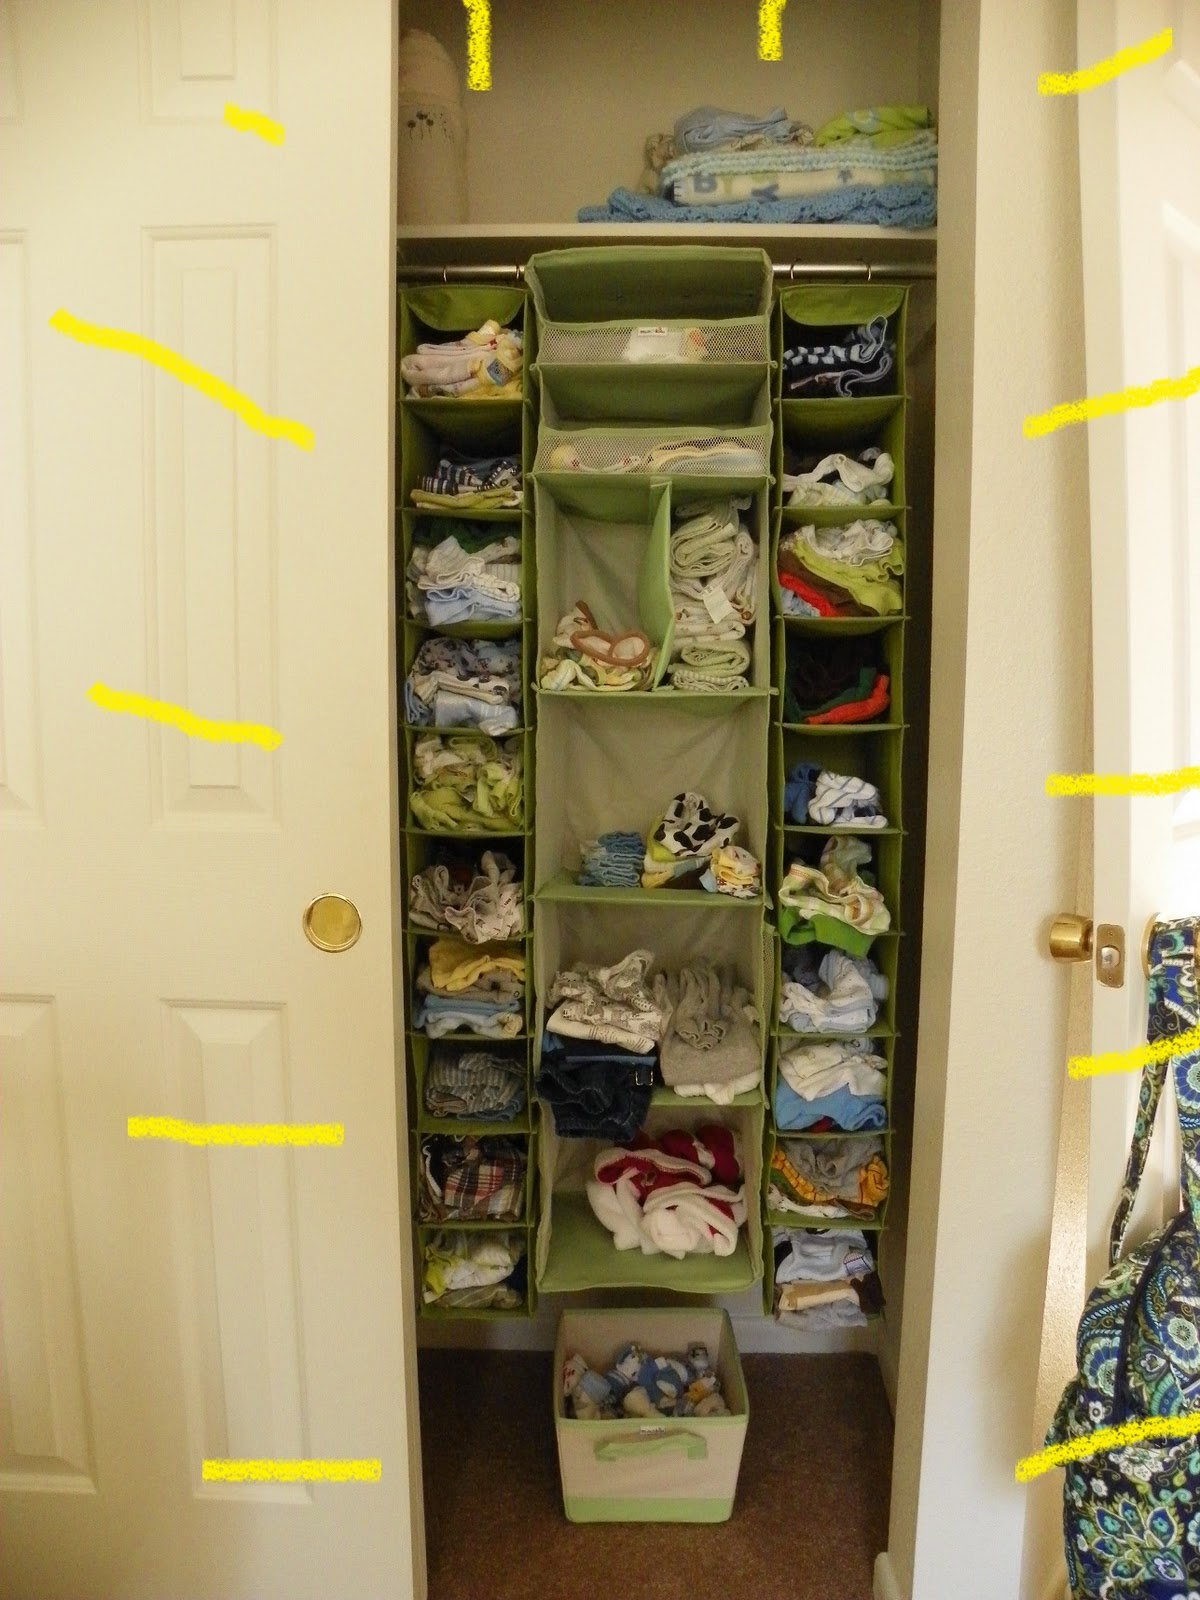 My First Room Toddler 3 Piece Room In A Box: Leap! ...and The Net Will Appear: Nursery Organization